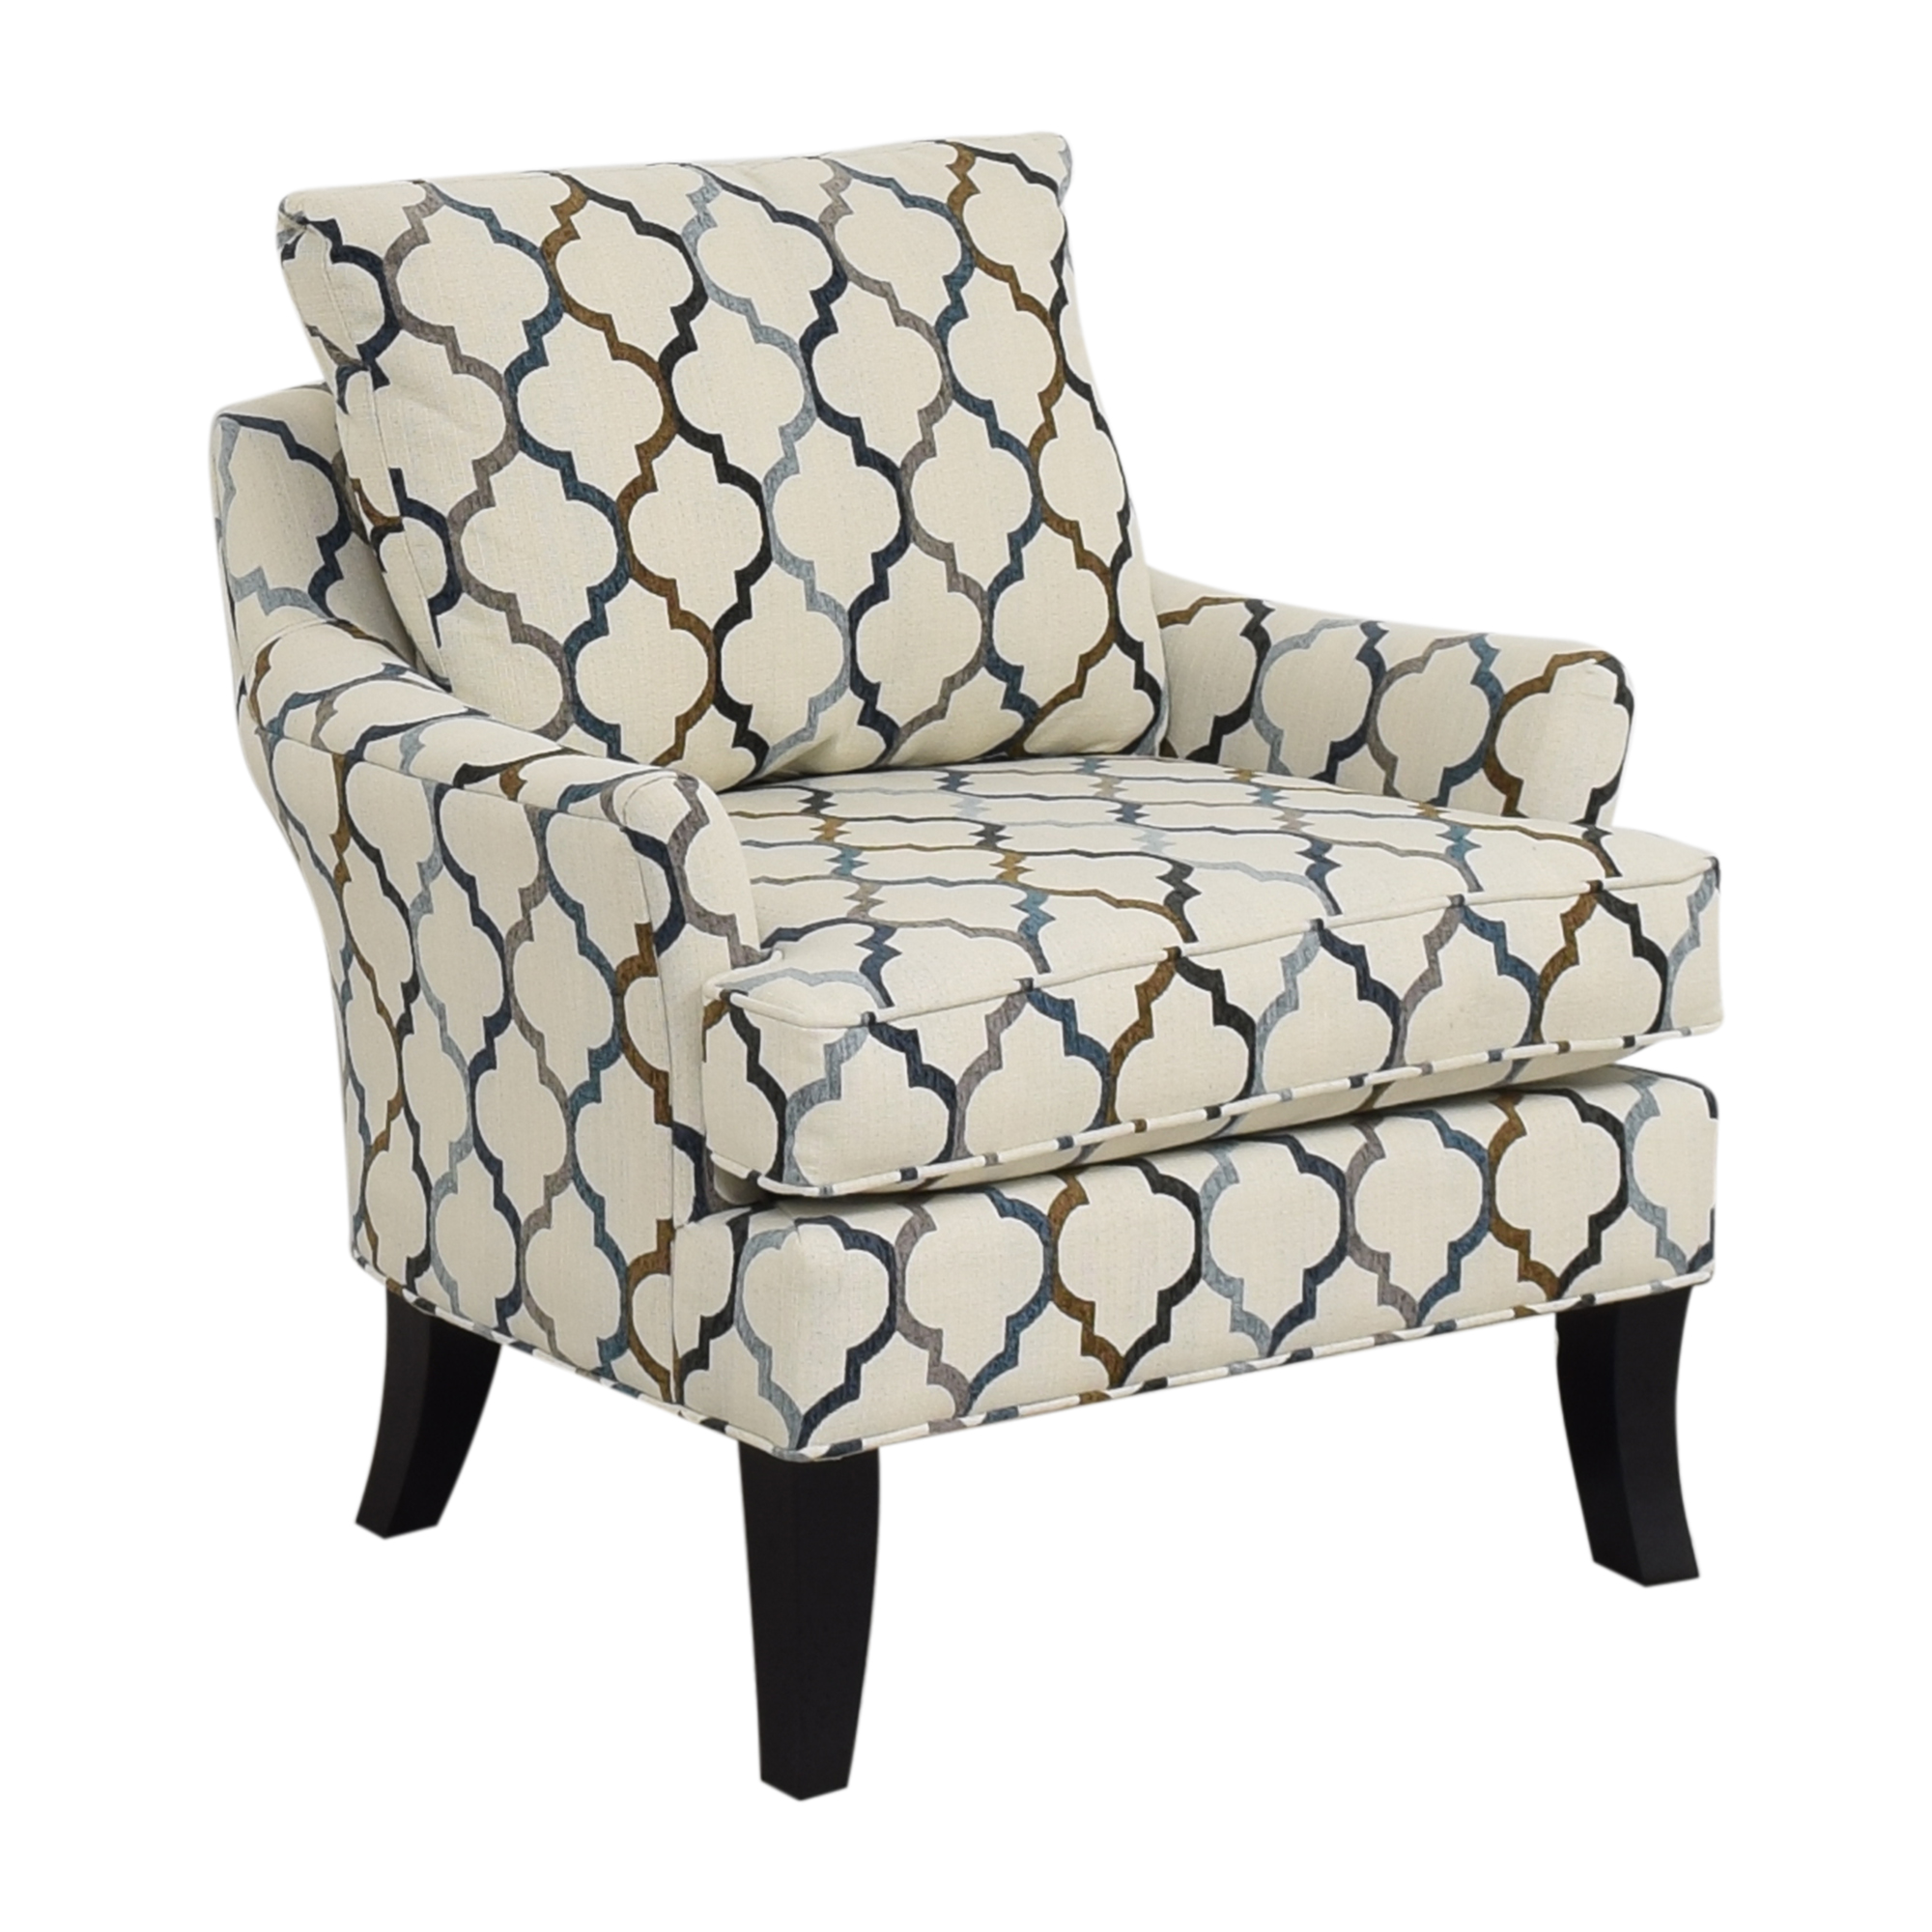 Raymour & Flanigan Raymour & Flanigan Quatrefoil Accent Chair on sale